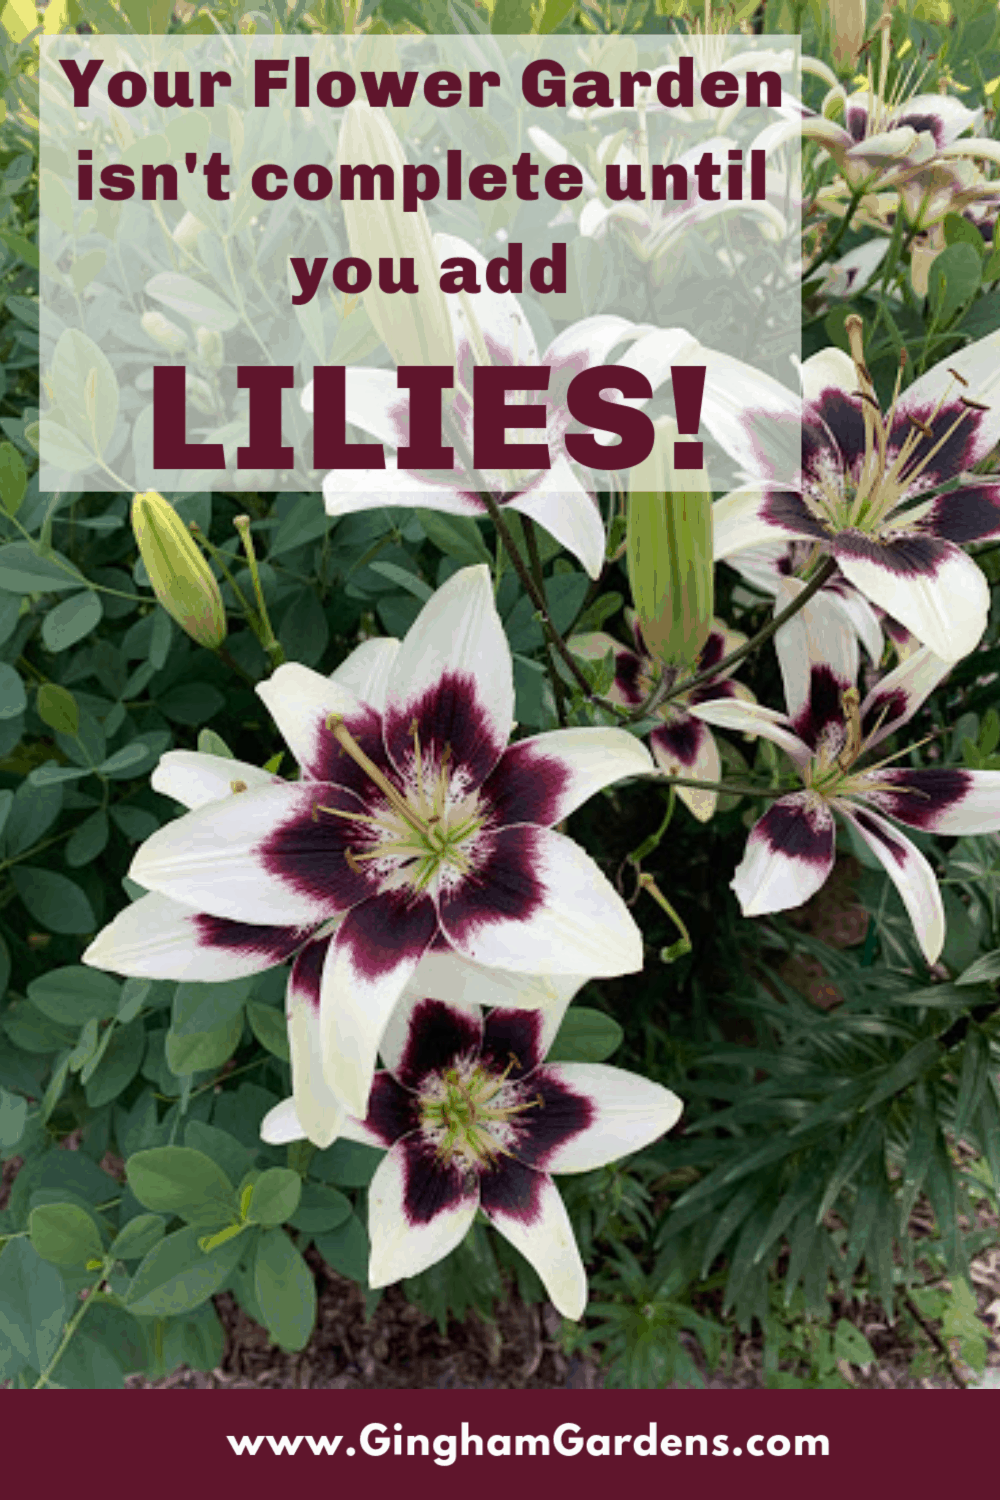 Image of Patricias Pride Lilies with Text Overlay - Your Flower Garden isn't complete until you add Lilies